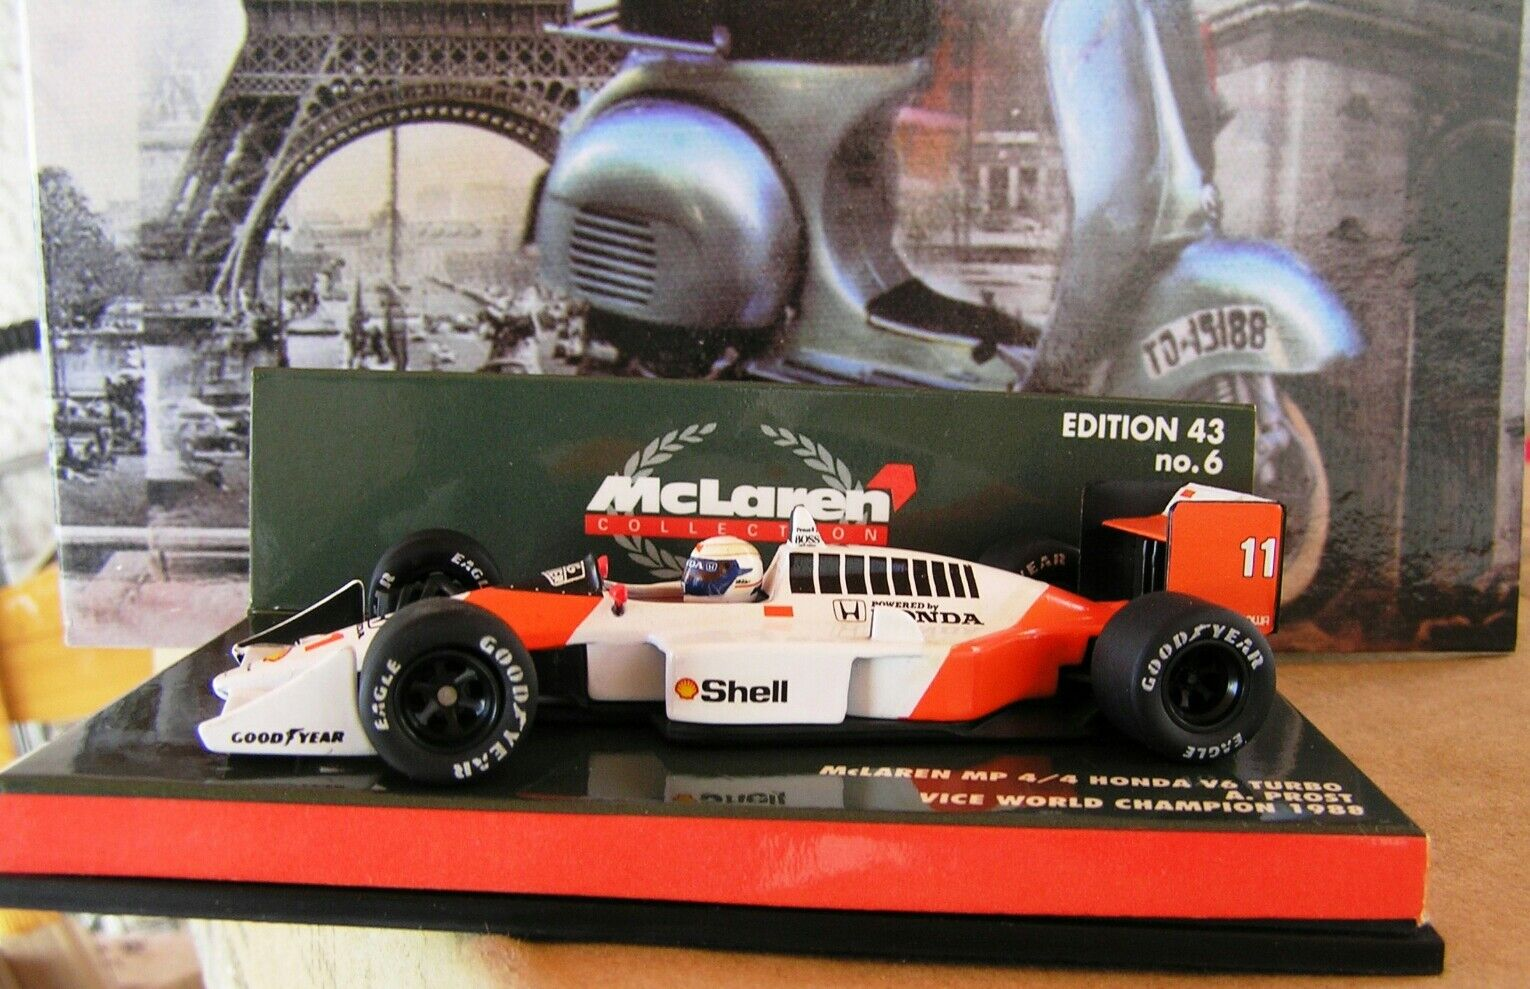 McLaren Honda MP4 4 turbo V6 as driven by Alain Prost in 1988 by Minichamps 1 43